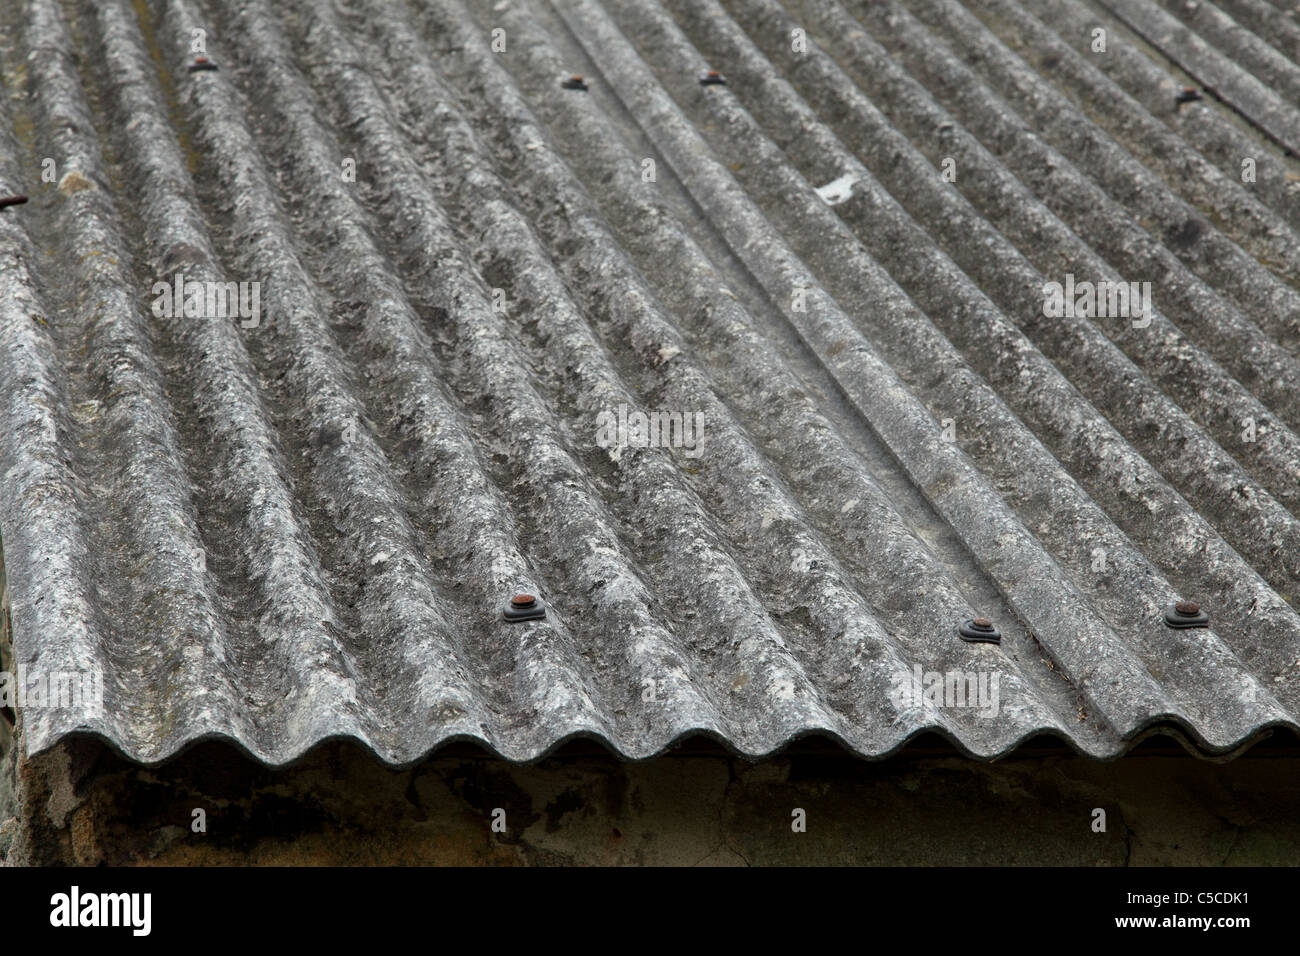 Corrugated Asbestos Roofing On A Building In The U K Stock